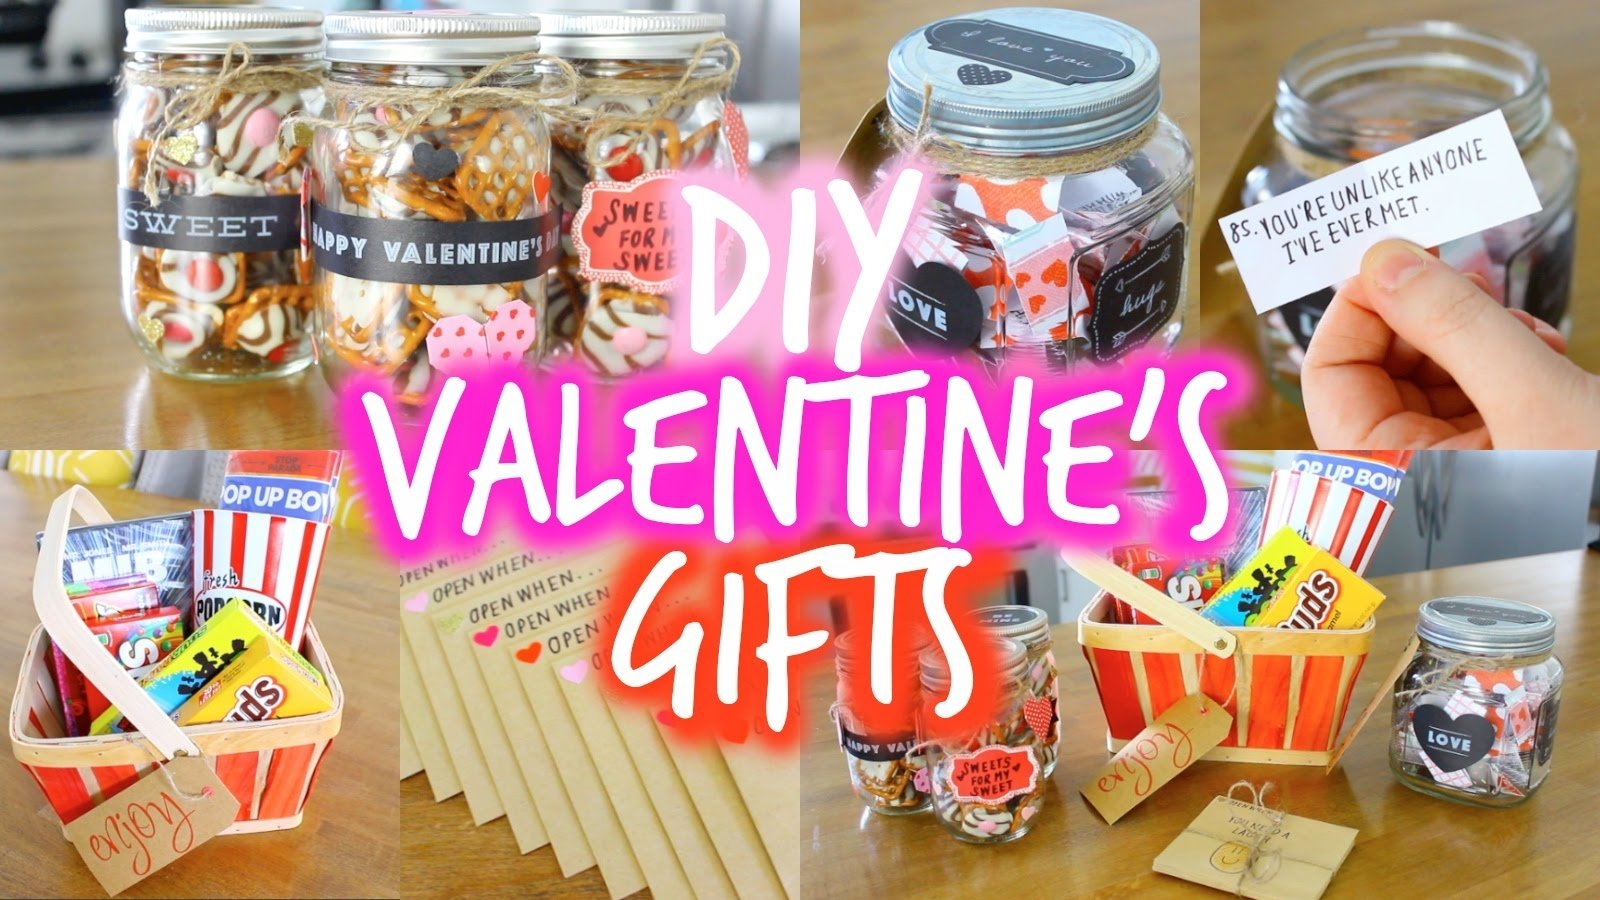 10 Elegant Gift Ideas For Valentines Day For Him easy diy valentines day gift ideas for your boyfriend youtube 5 2020